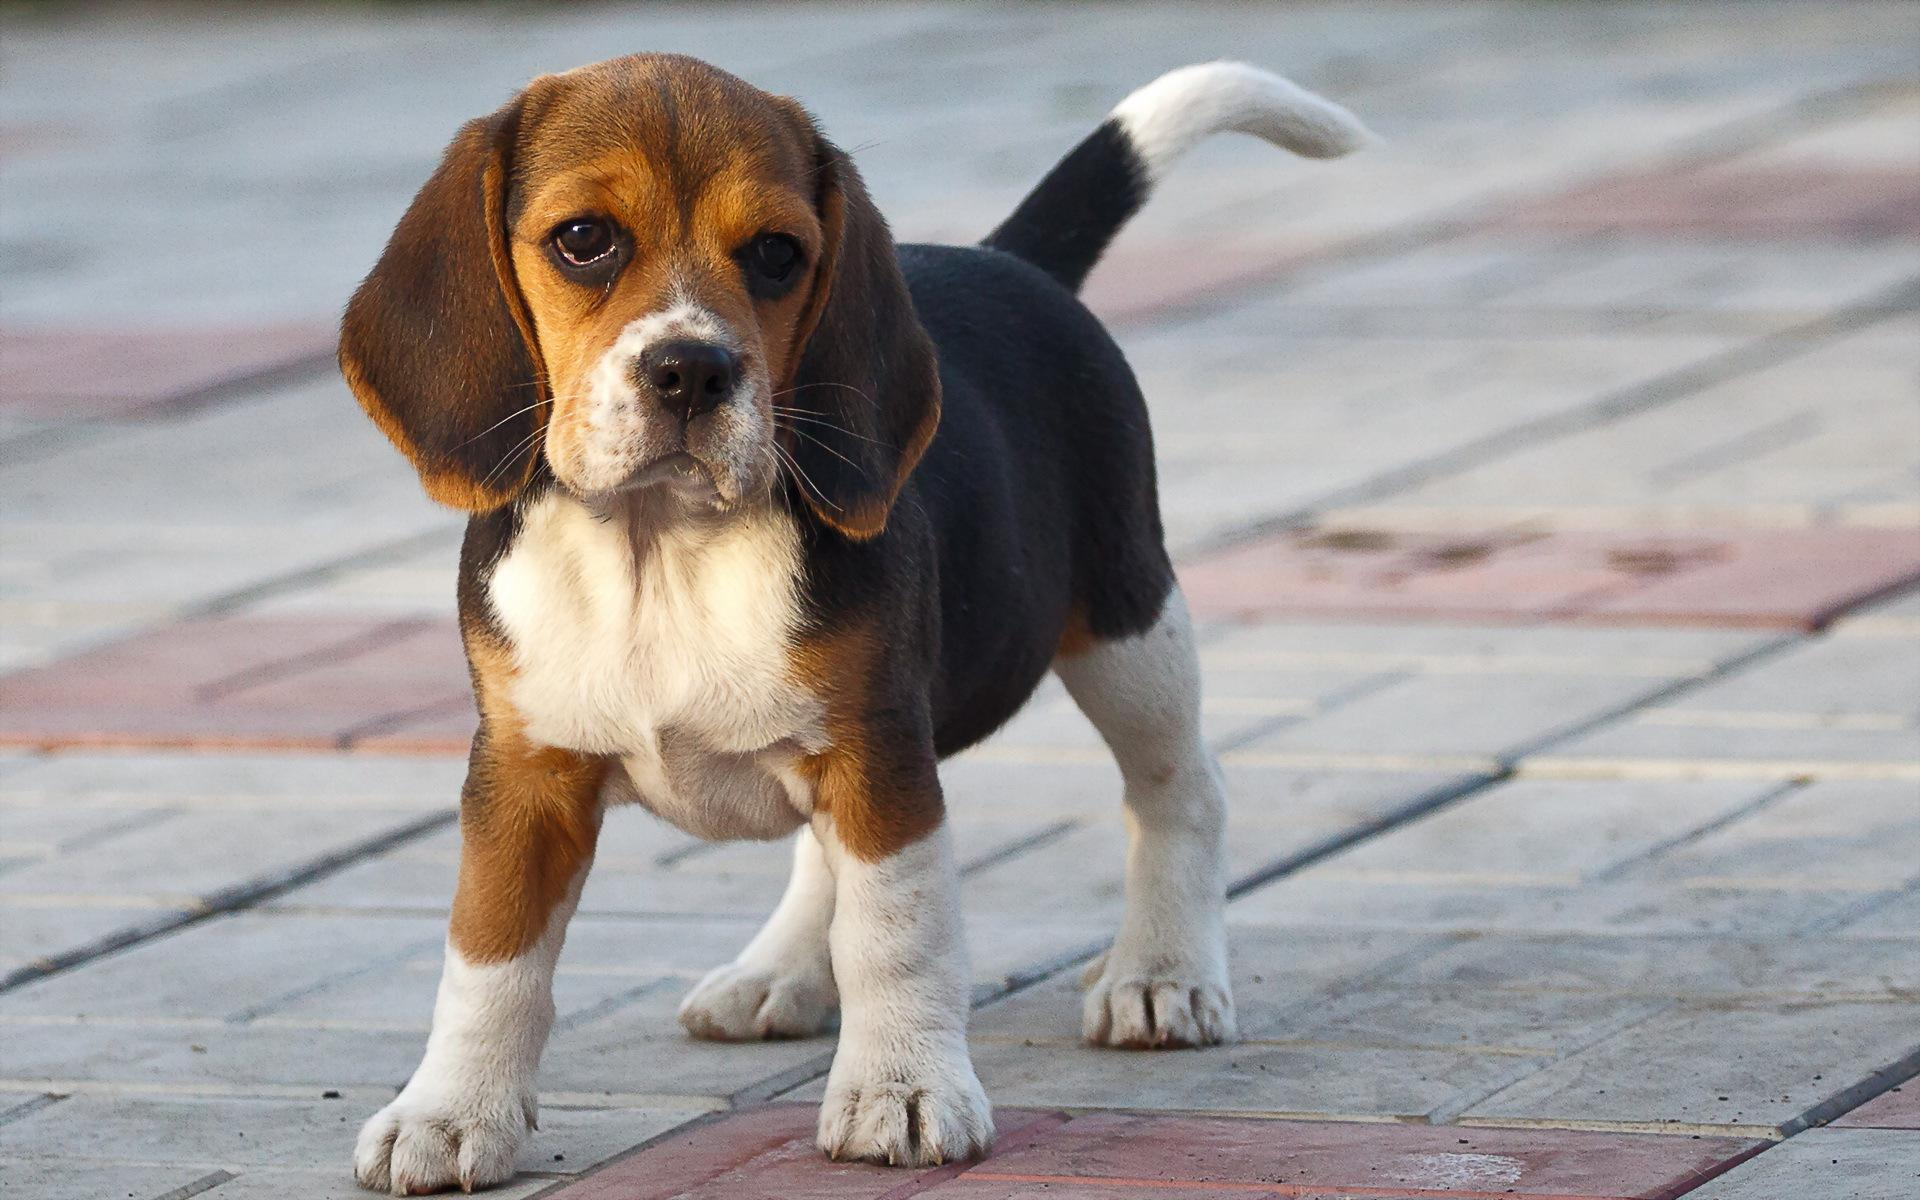 Funny beagle puppy on the sidewalk wallpapers and images   wallpapers 1920x1200